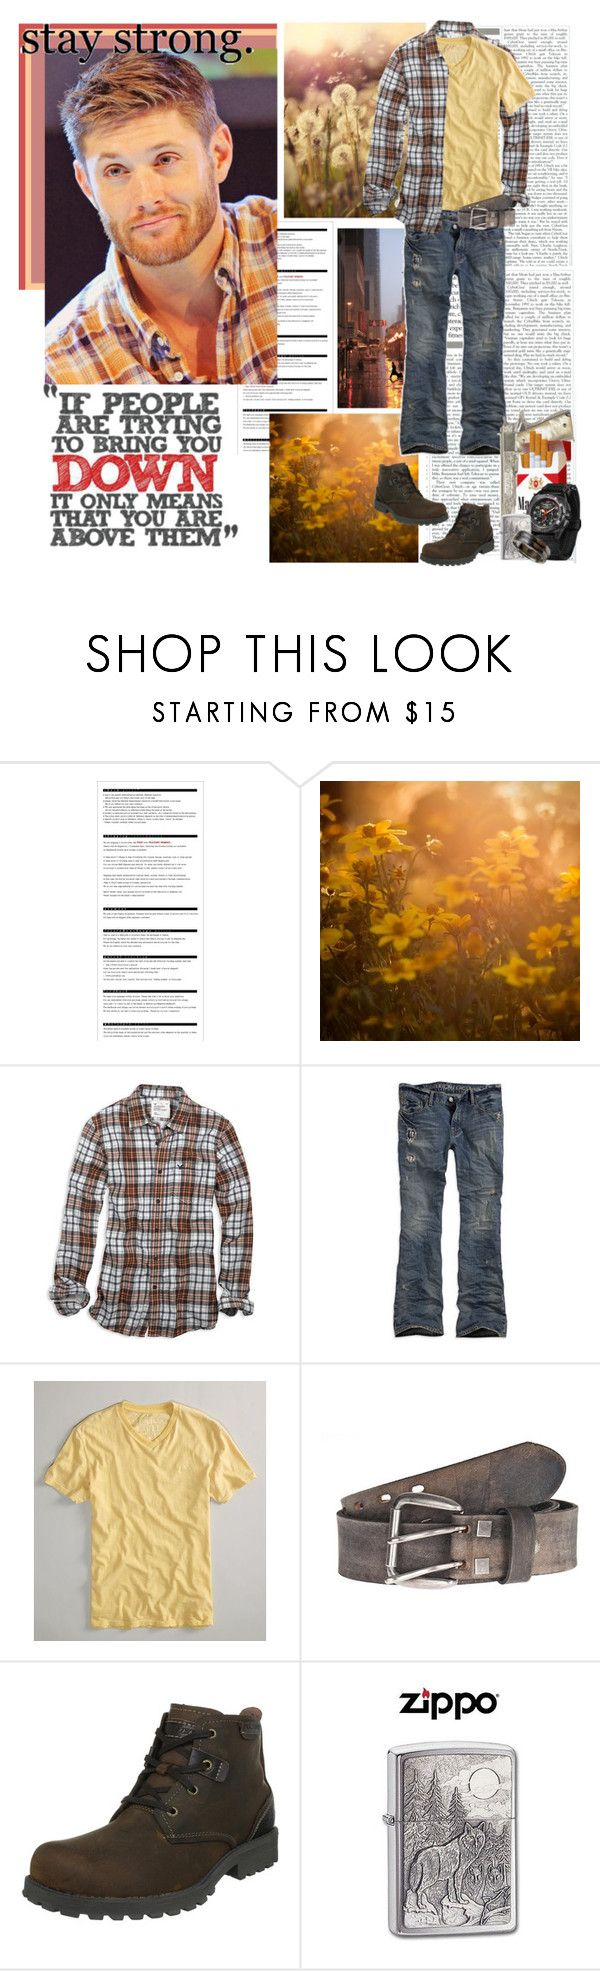 """""""``the world is a cruel and harsh place"""" by mars-phoenix ❤ liked on Polyvore featuring Arche, American Eagle Outfitters, Skechers, MTM Special Ops and Zippo"""